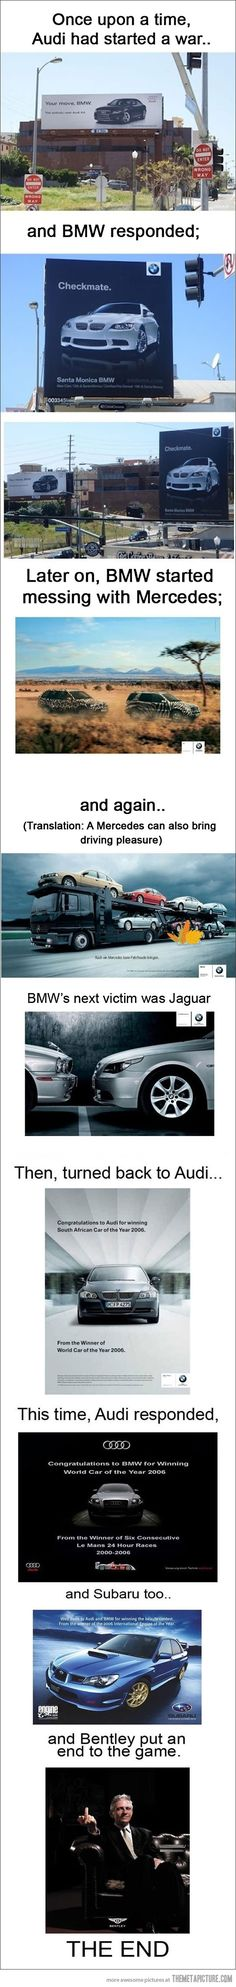 minus the finger, this is pretty funny  Audi Ad War